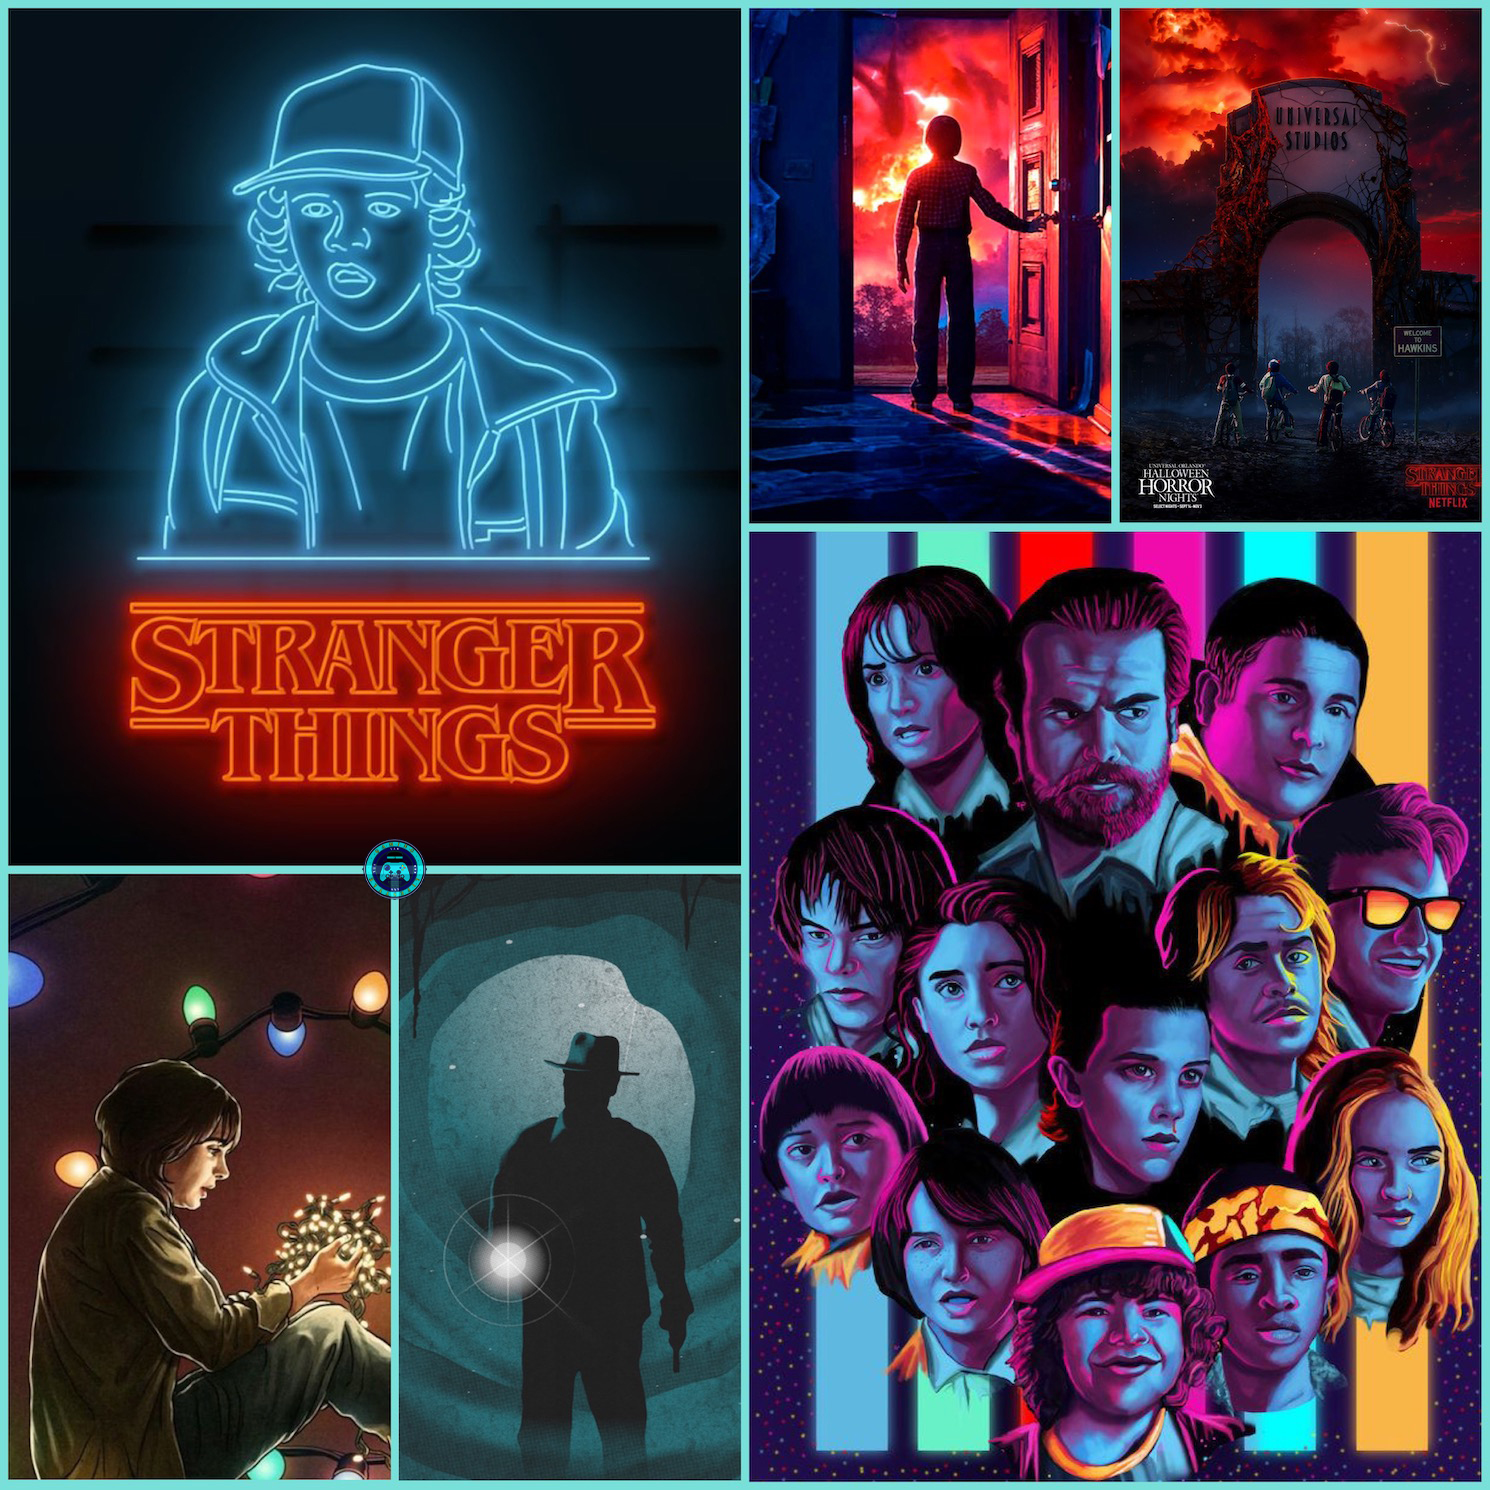 stranger-things-considerazioni-riflessioni-insta-thoughts-cinema-serie-tv-netflix